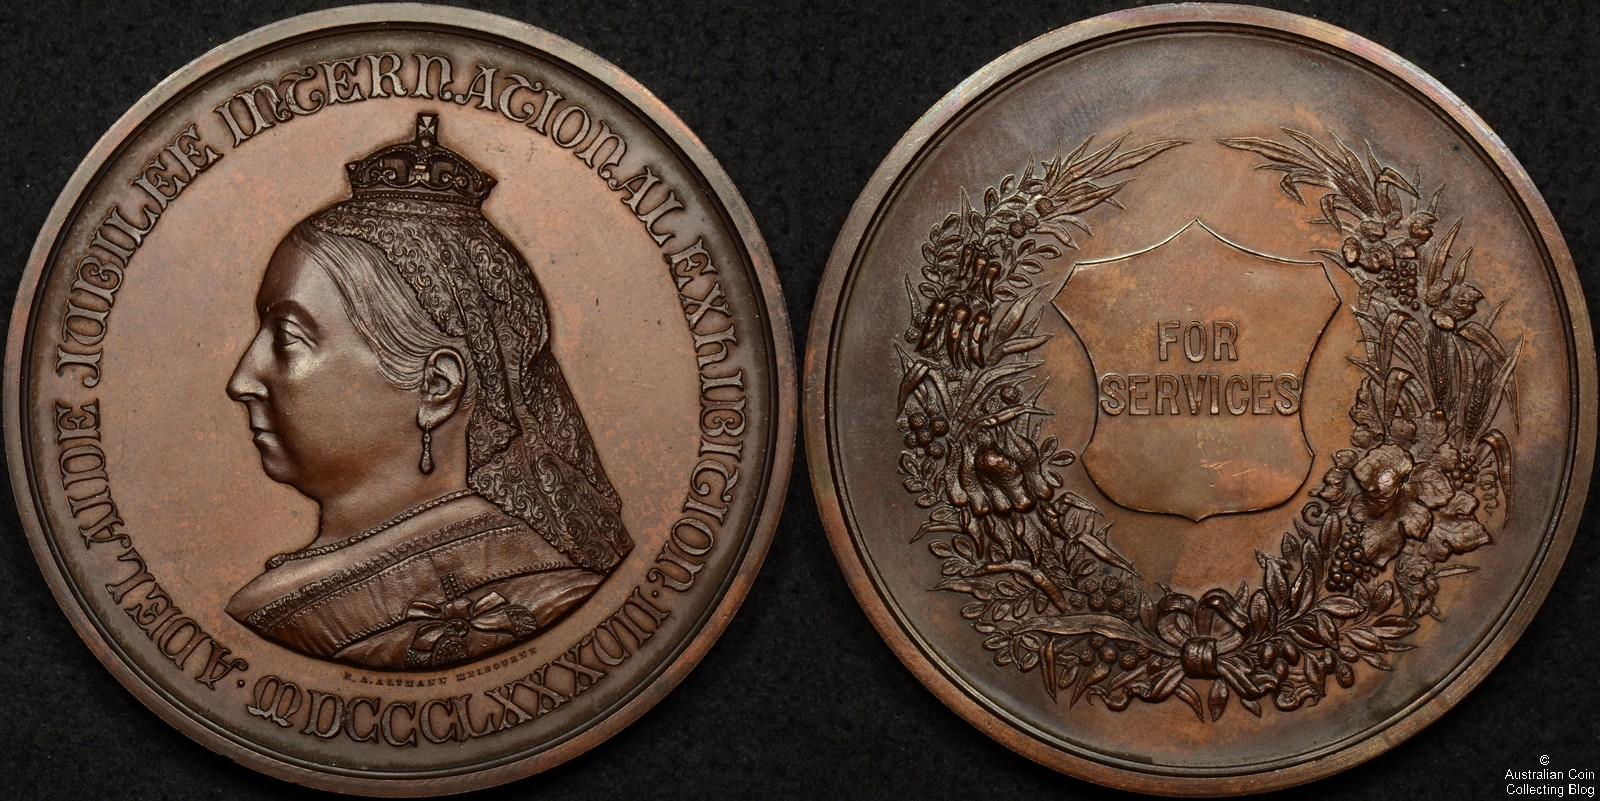 1887 Adelaide International Exhibition Medal